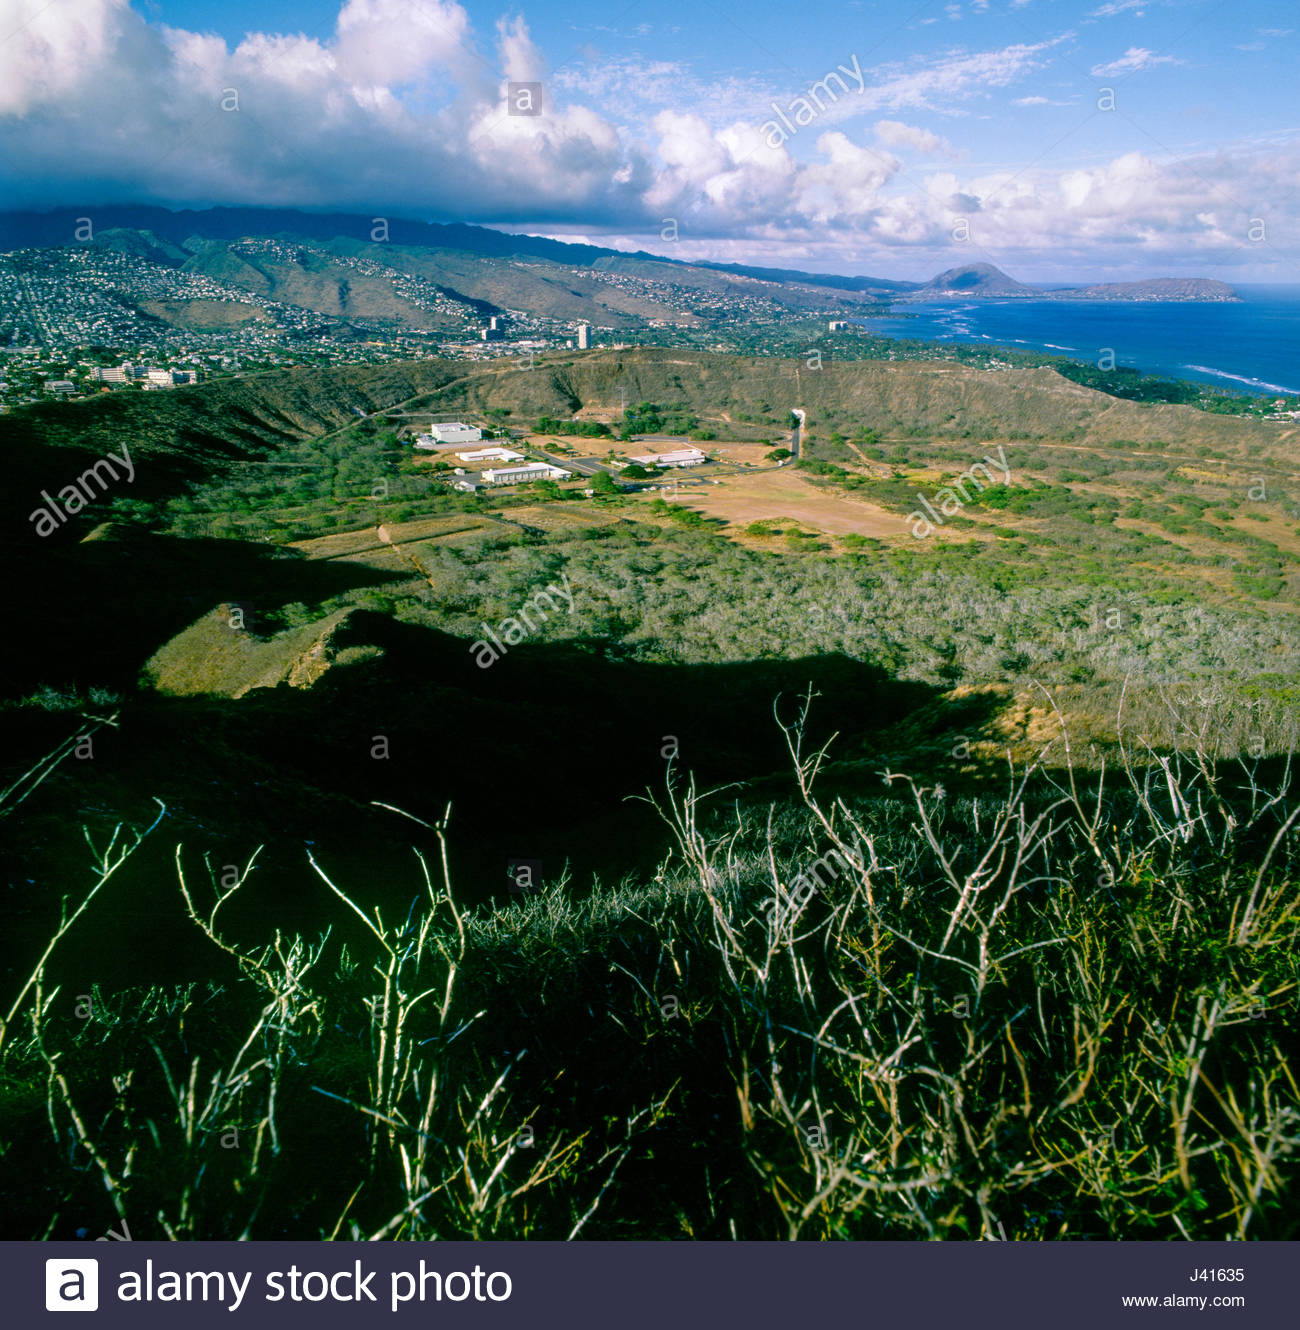 View looking West of the inside of Diamond Head crater from Le'ahi Peak, Honolulu, Oahu, Hawaii, USA. National - Stock Image